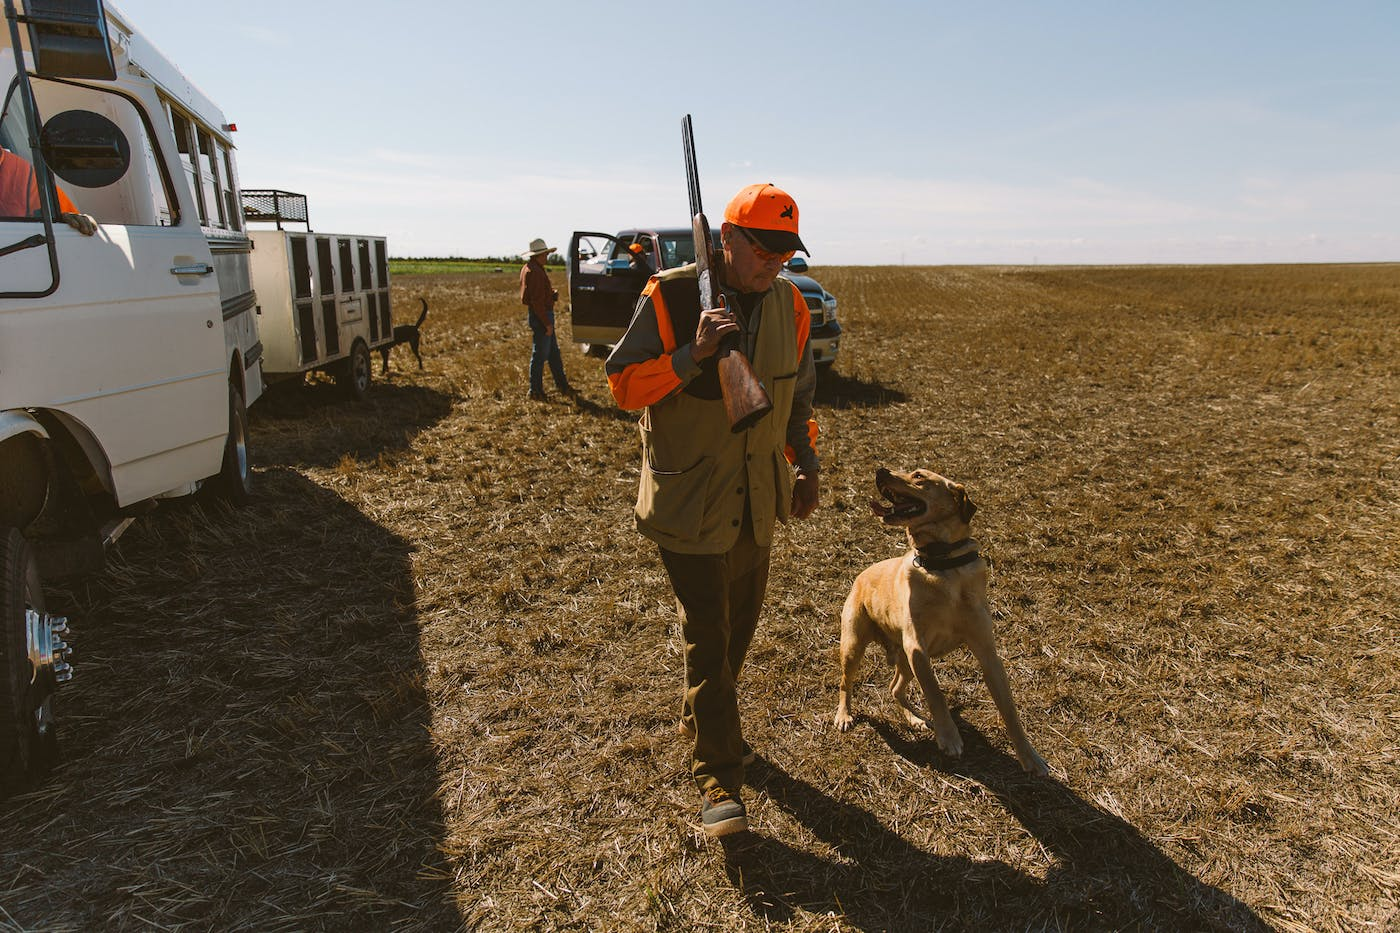 Filson Life - Hunting with Tom Brokaw